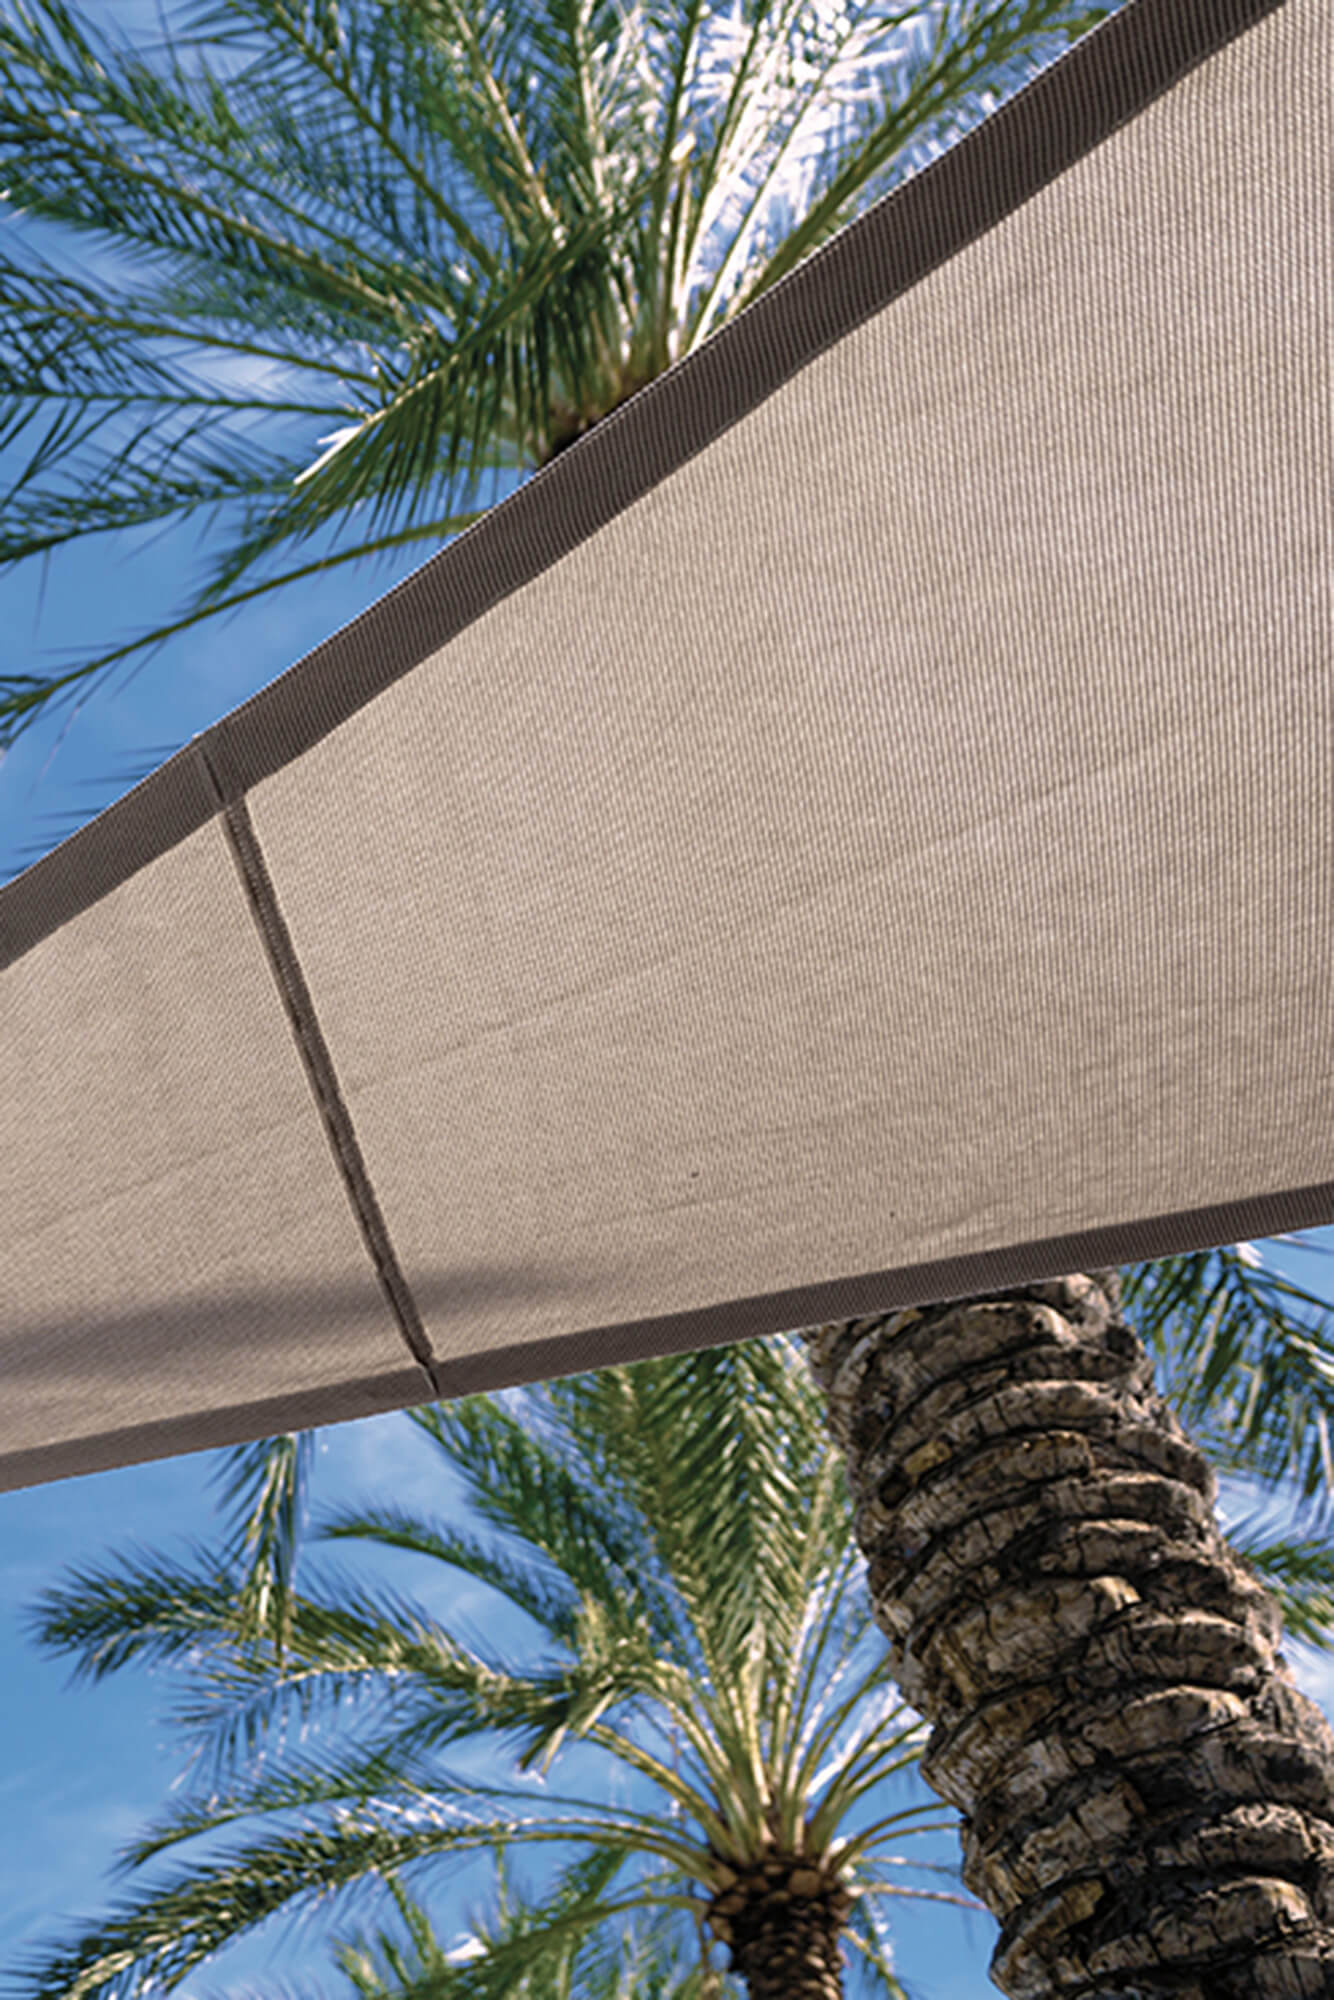 Detail of the underside of a beige shade sail made using Sunbrella Contour fabric